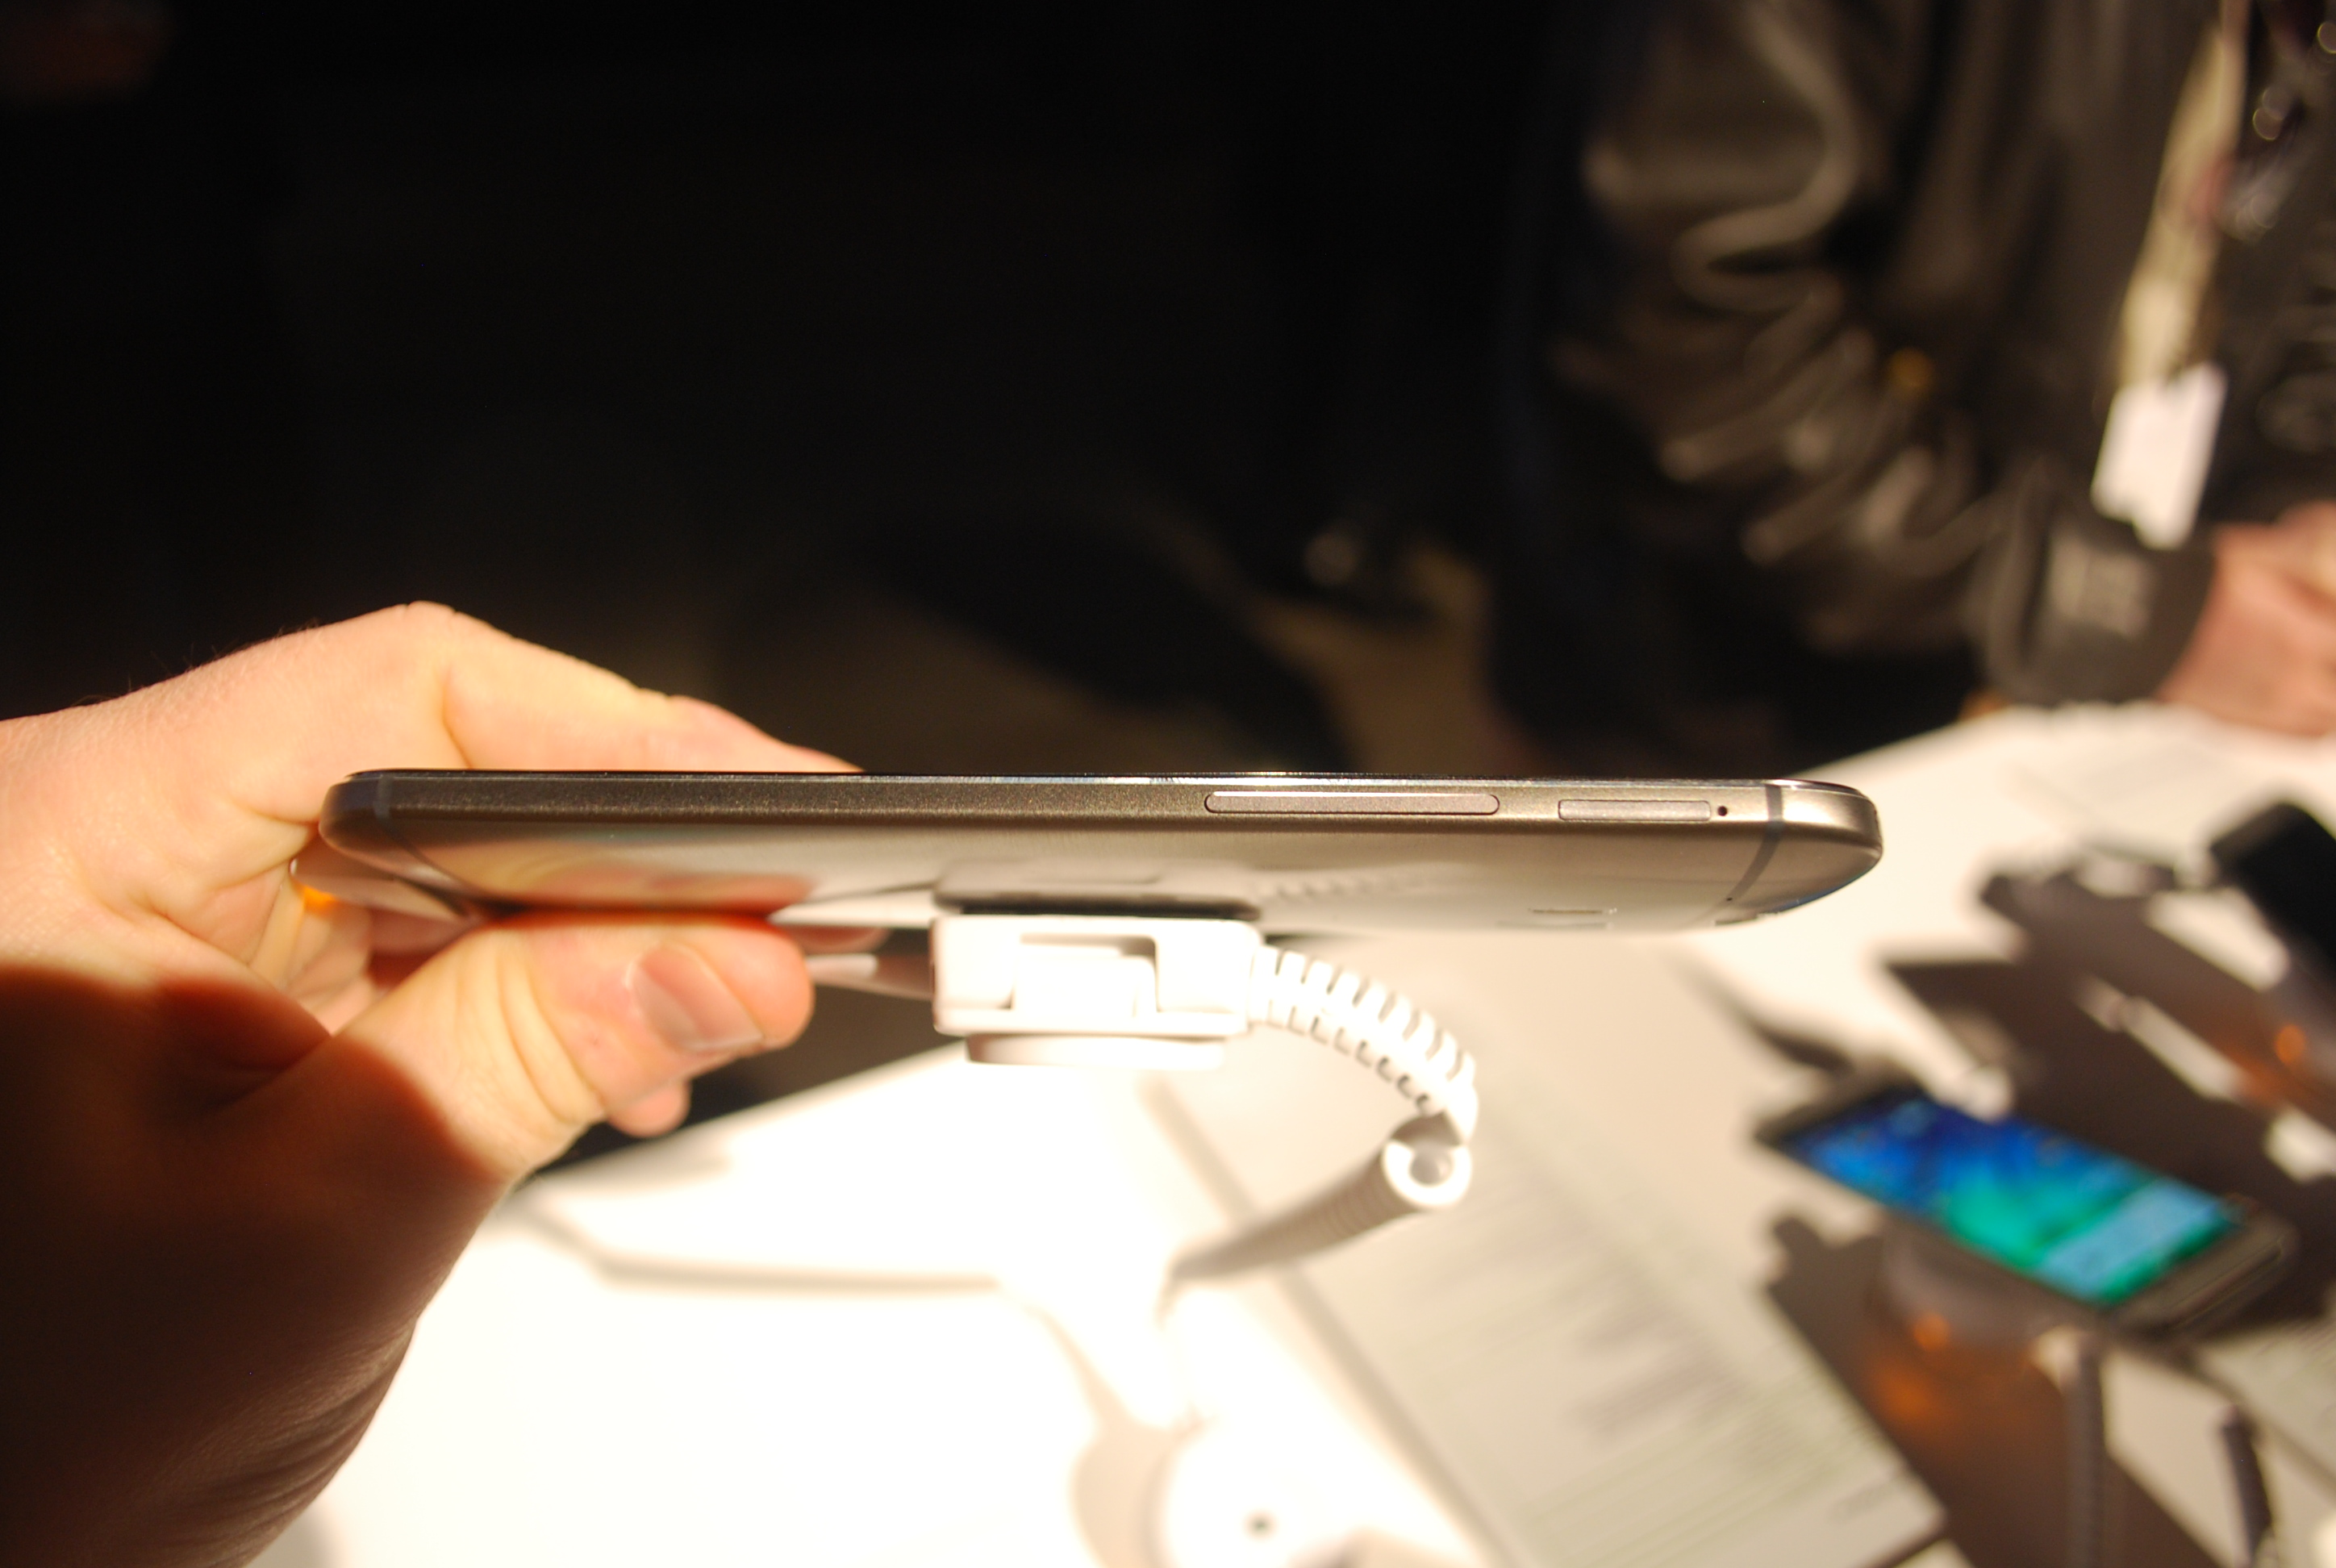 HTC One M8 profile